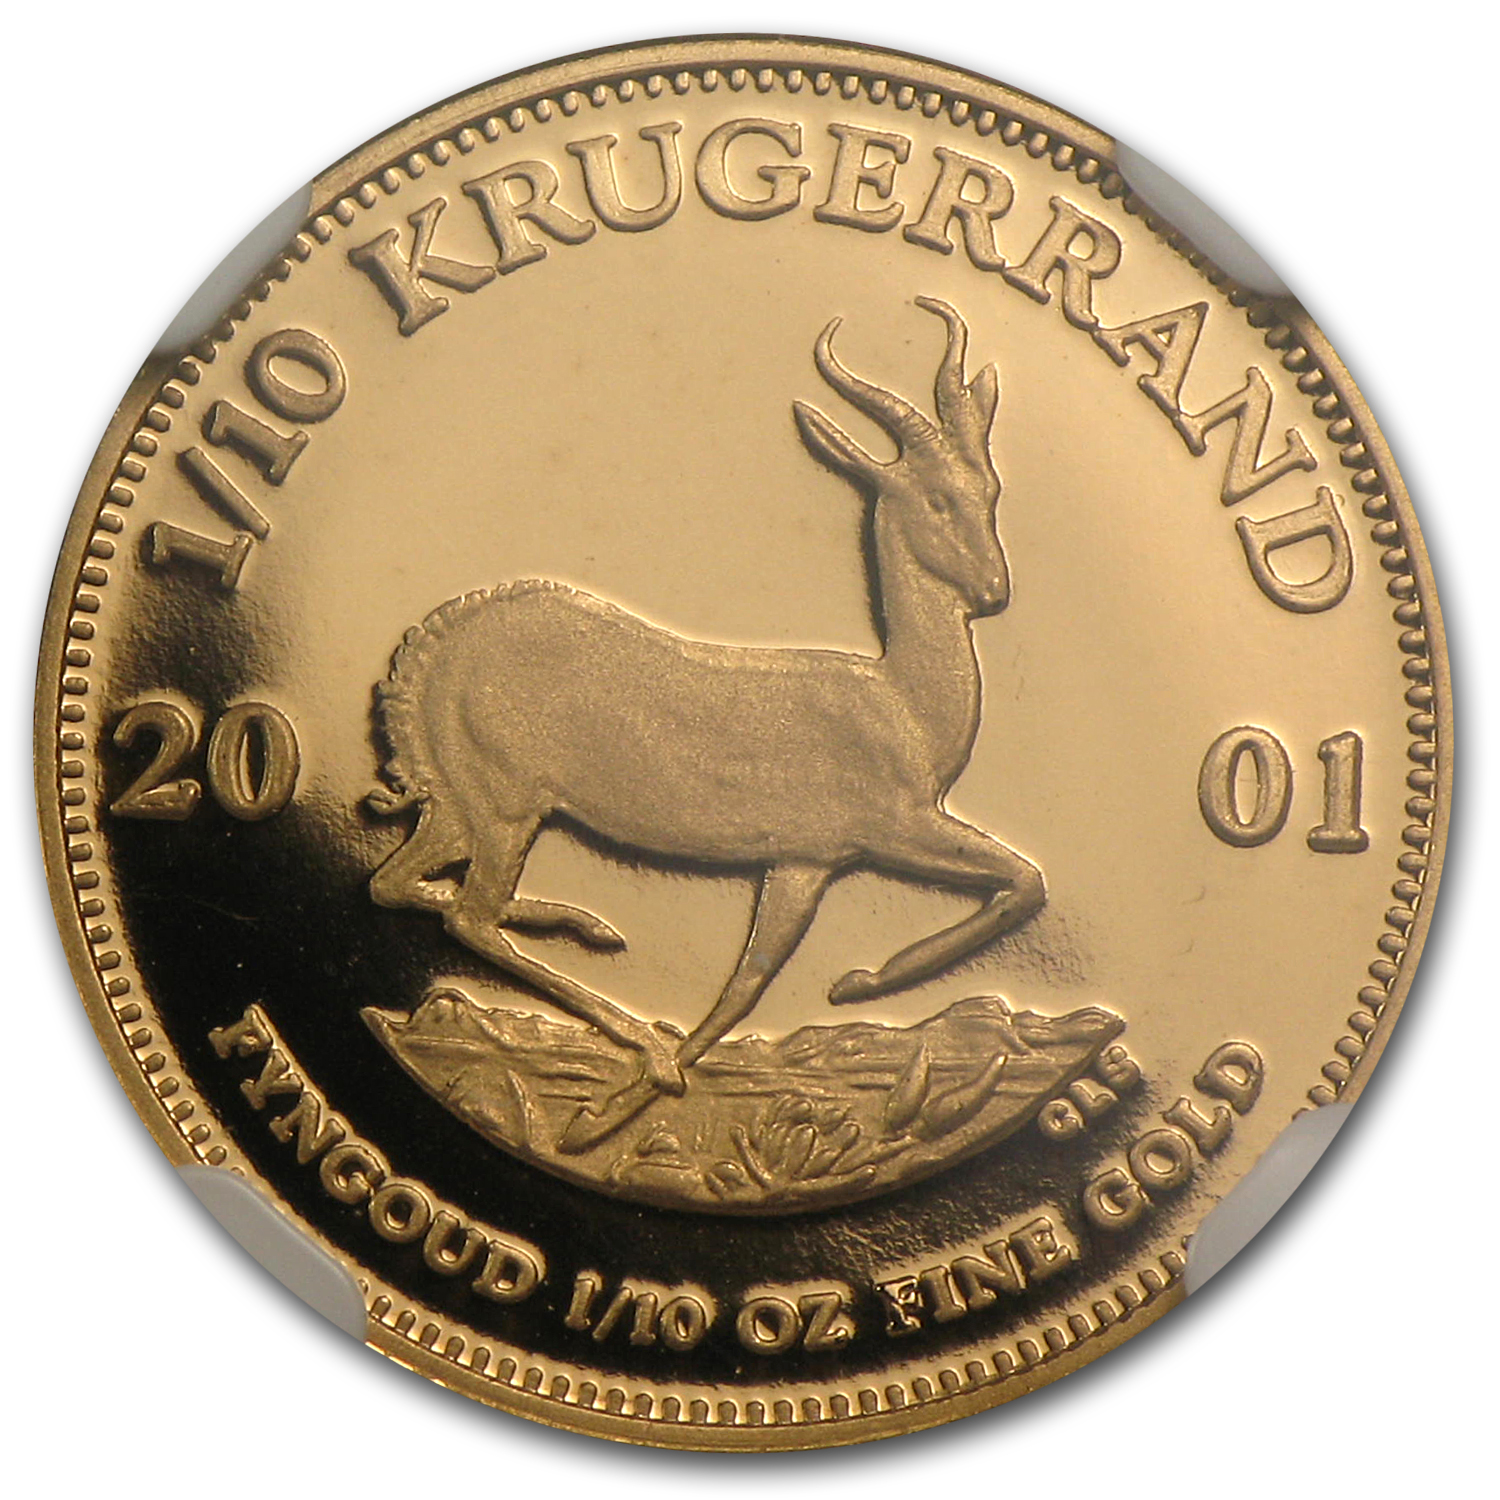 2001 1/10 oz Gold South African Krugerrand PF-69 NGC